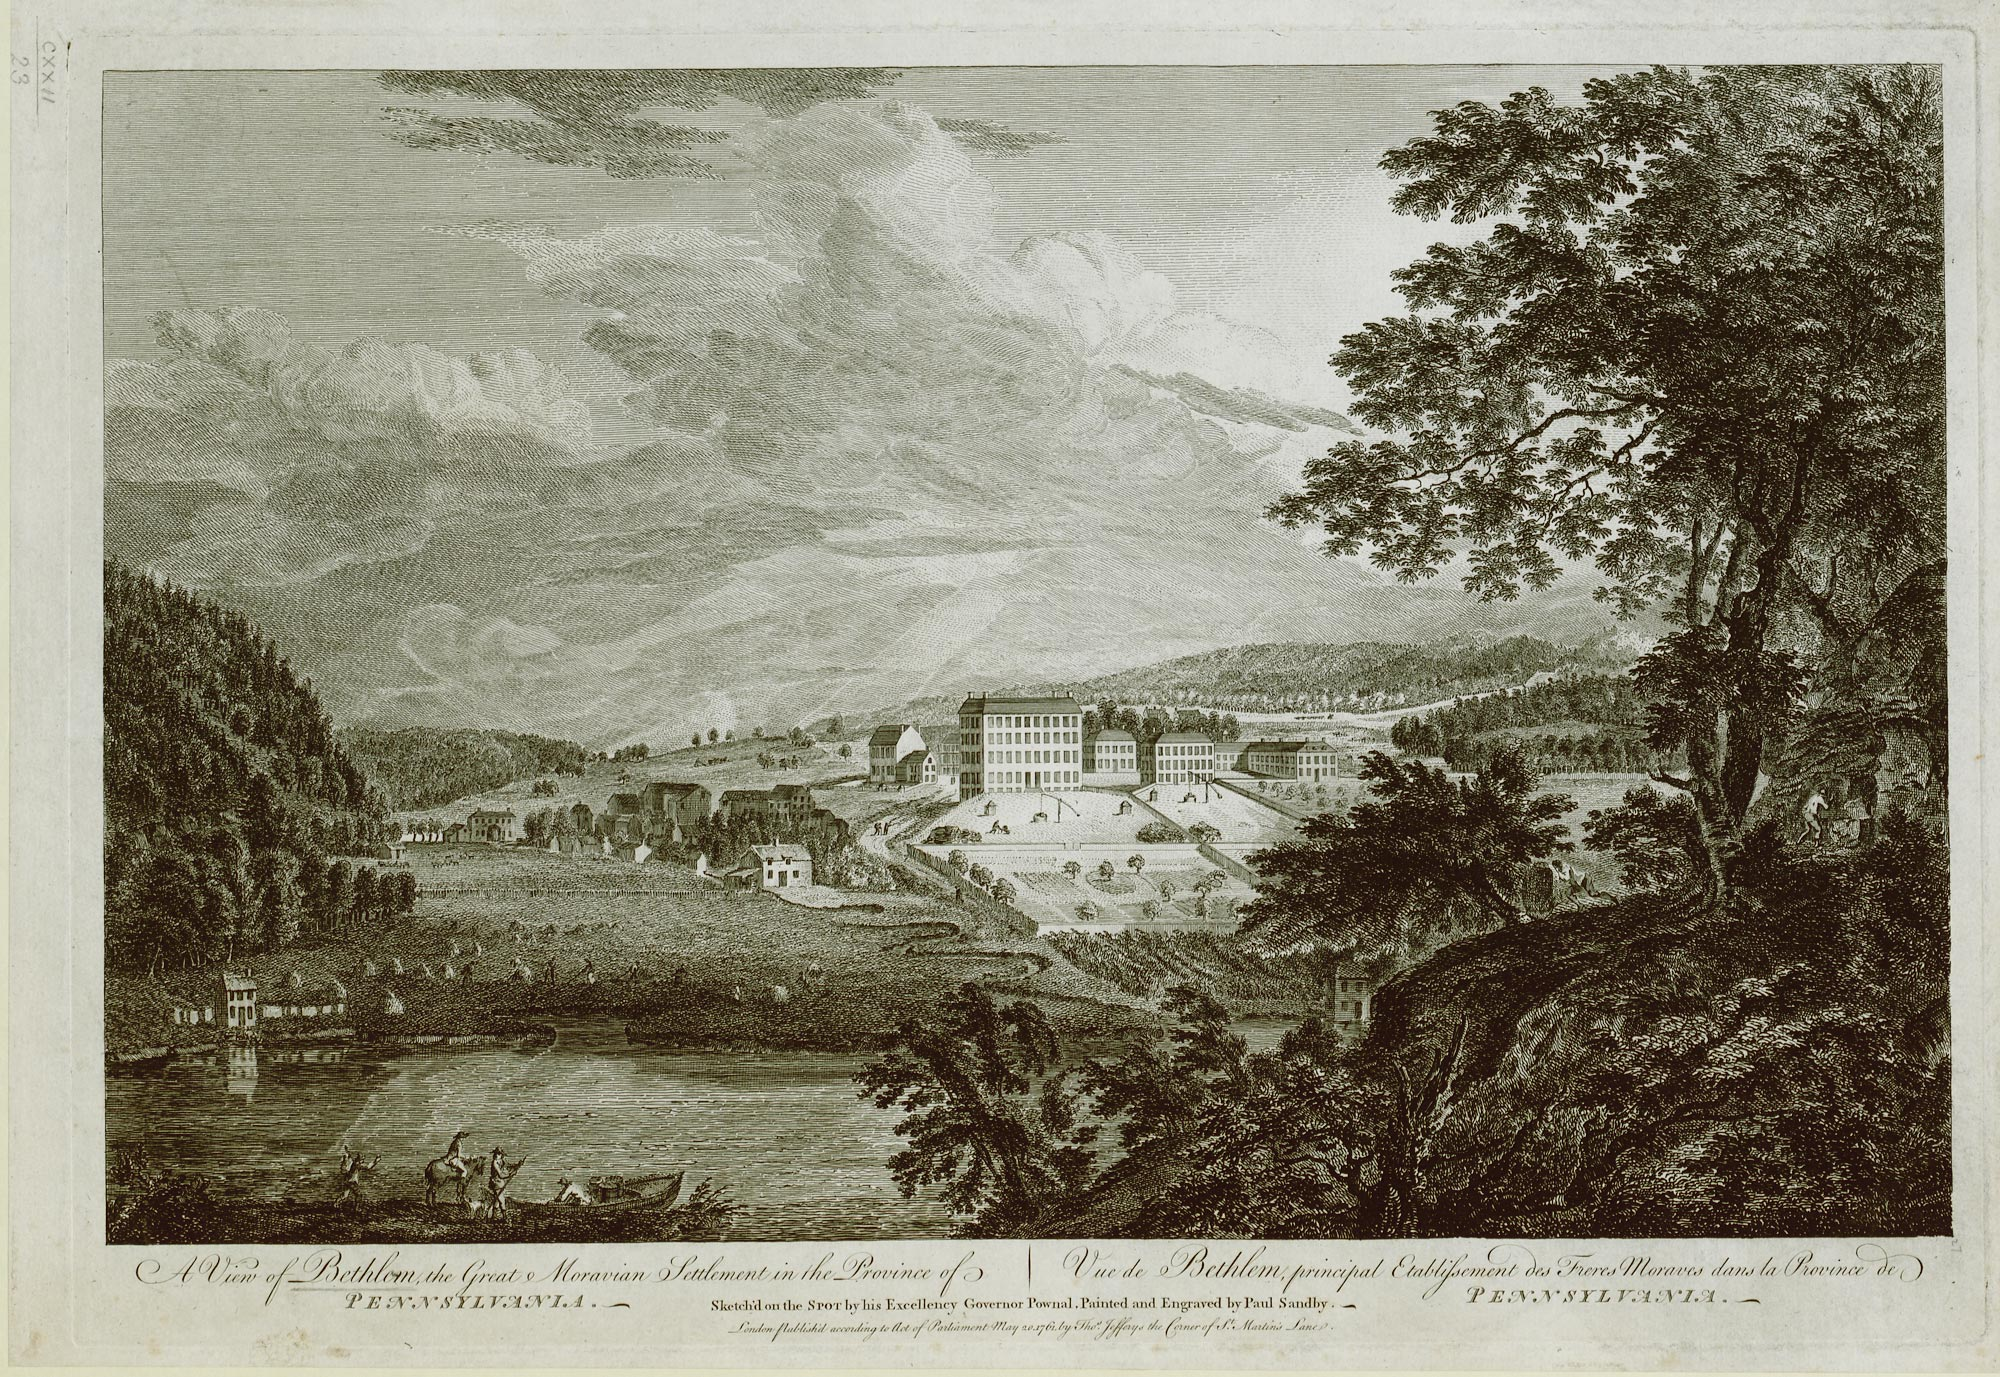 A View of Bethlem (Maps K.Top.122.23)